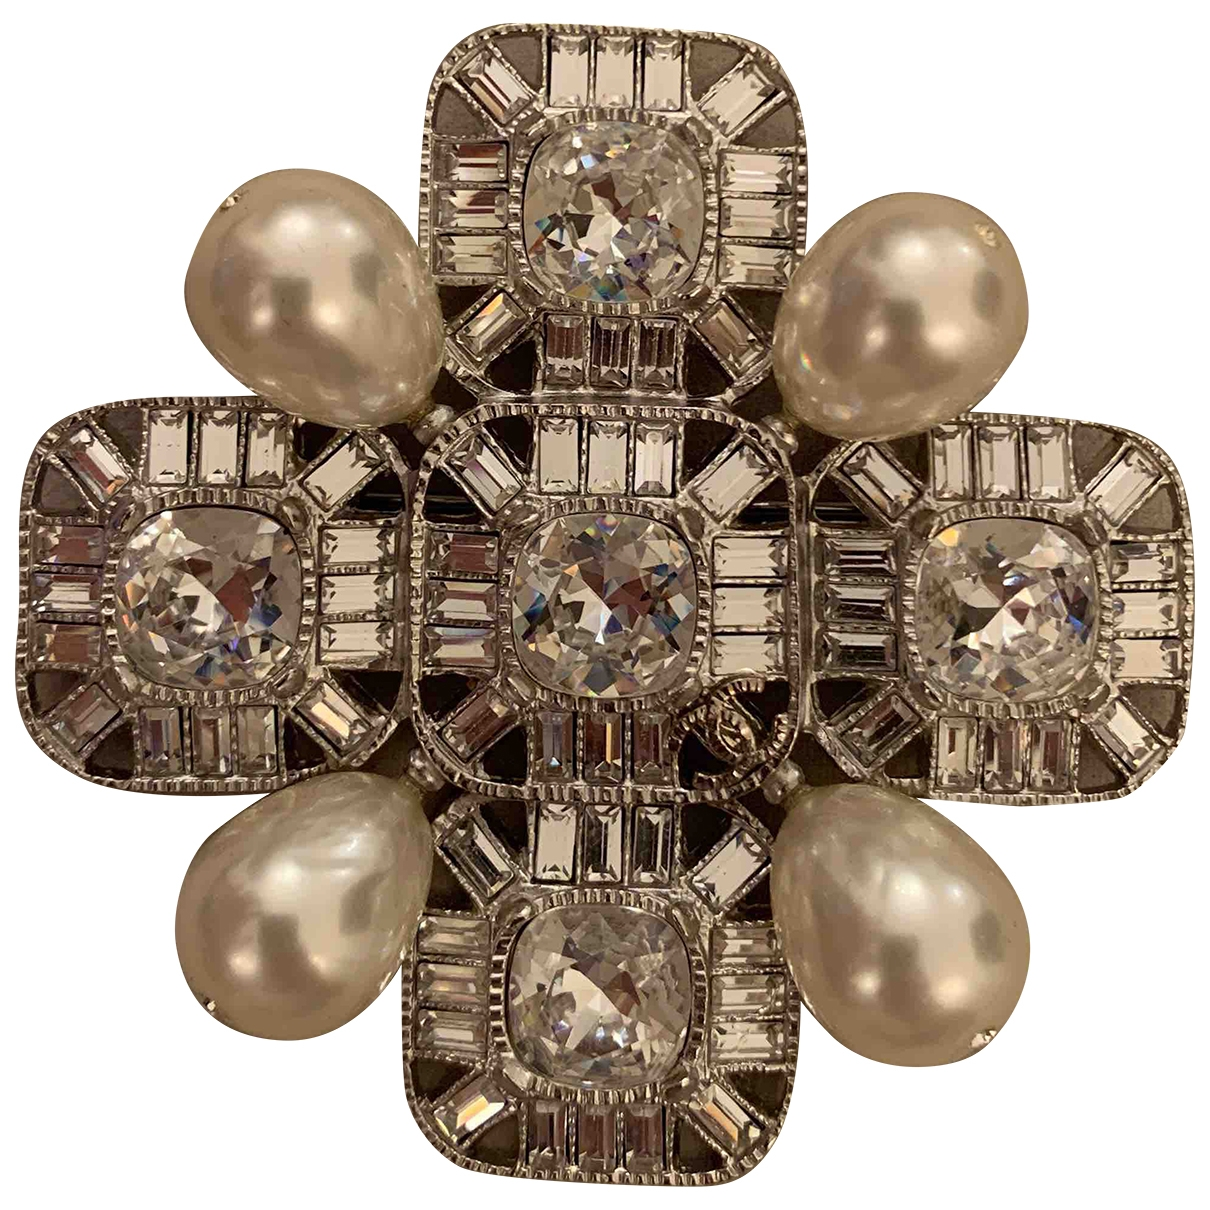 Broche en Metal Plateado Chanel